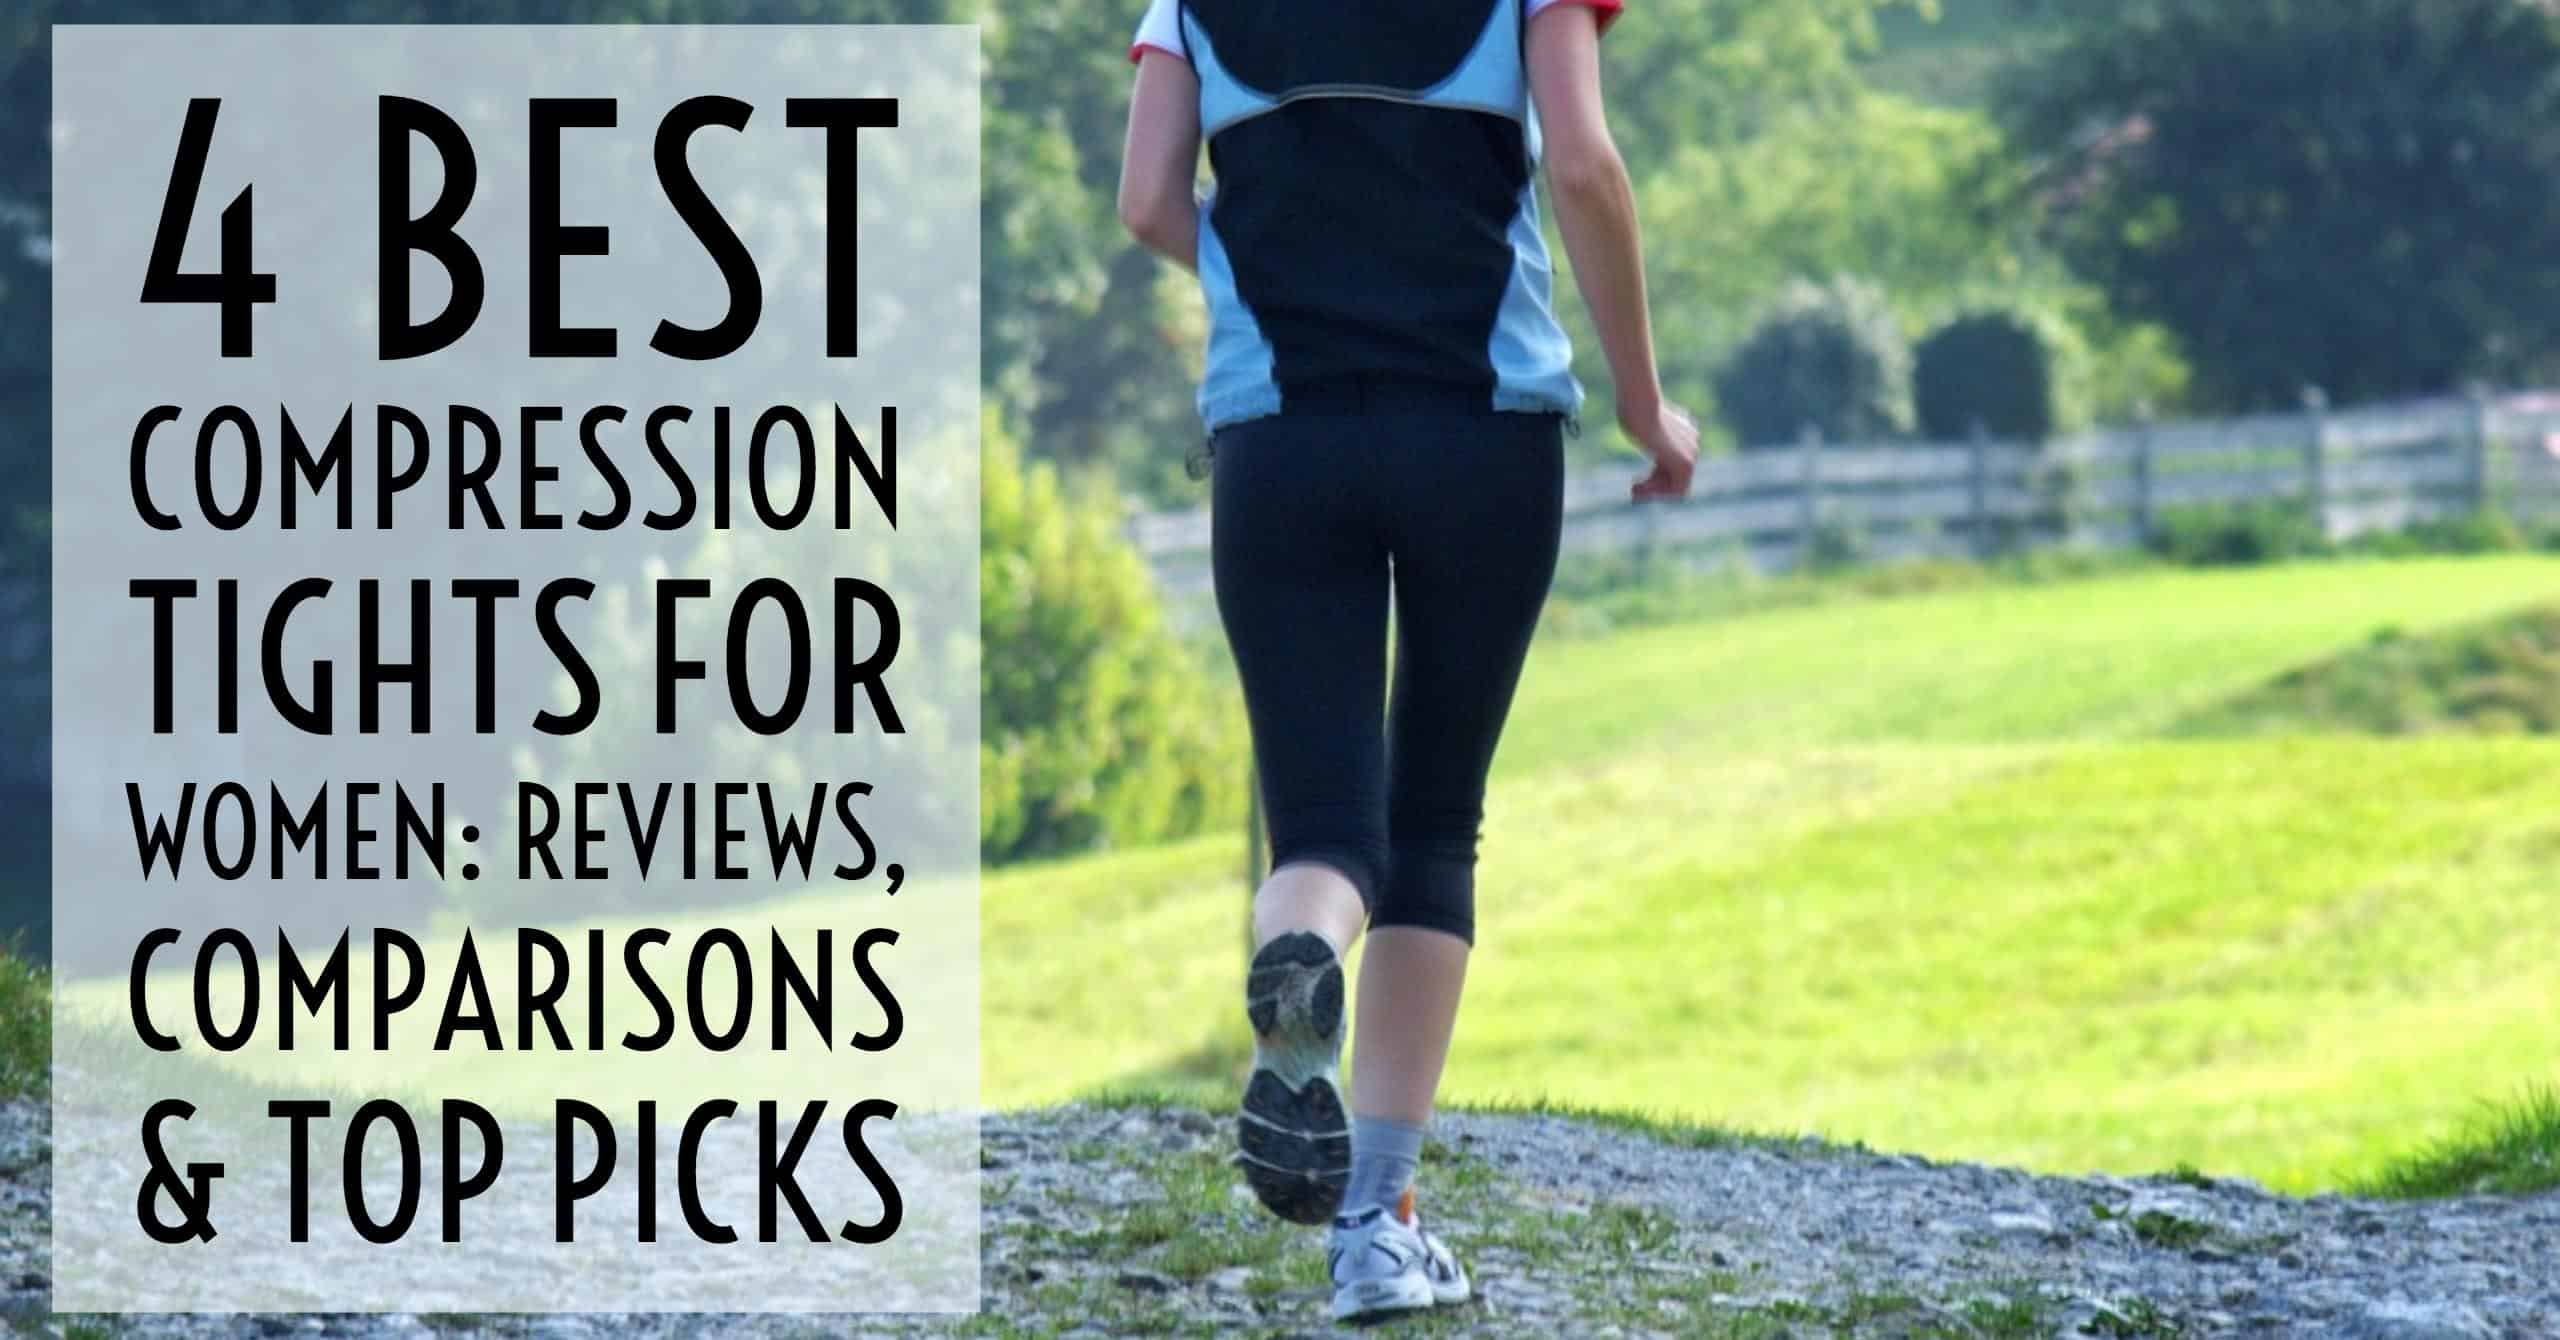 The 4 Best Compression Tights For Women Perfect For Running W Reviews Train For A 5k Com